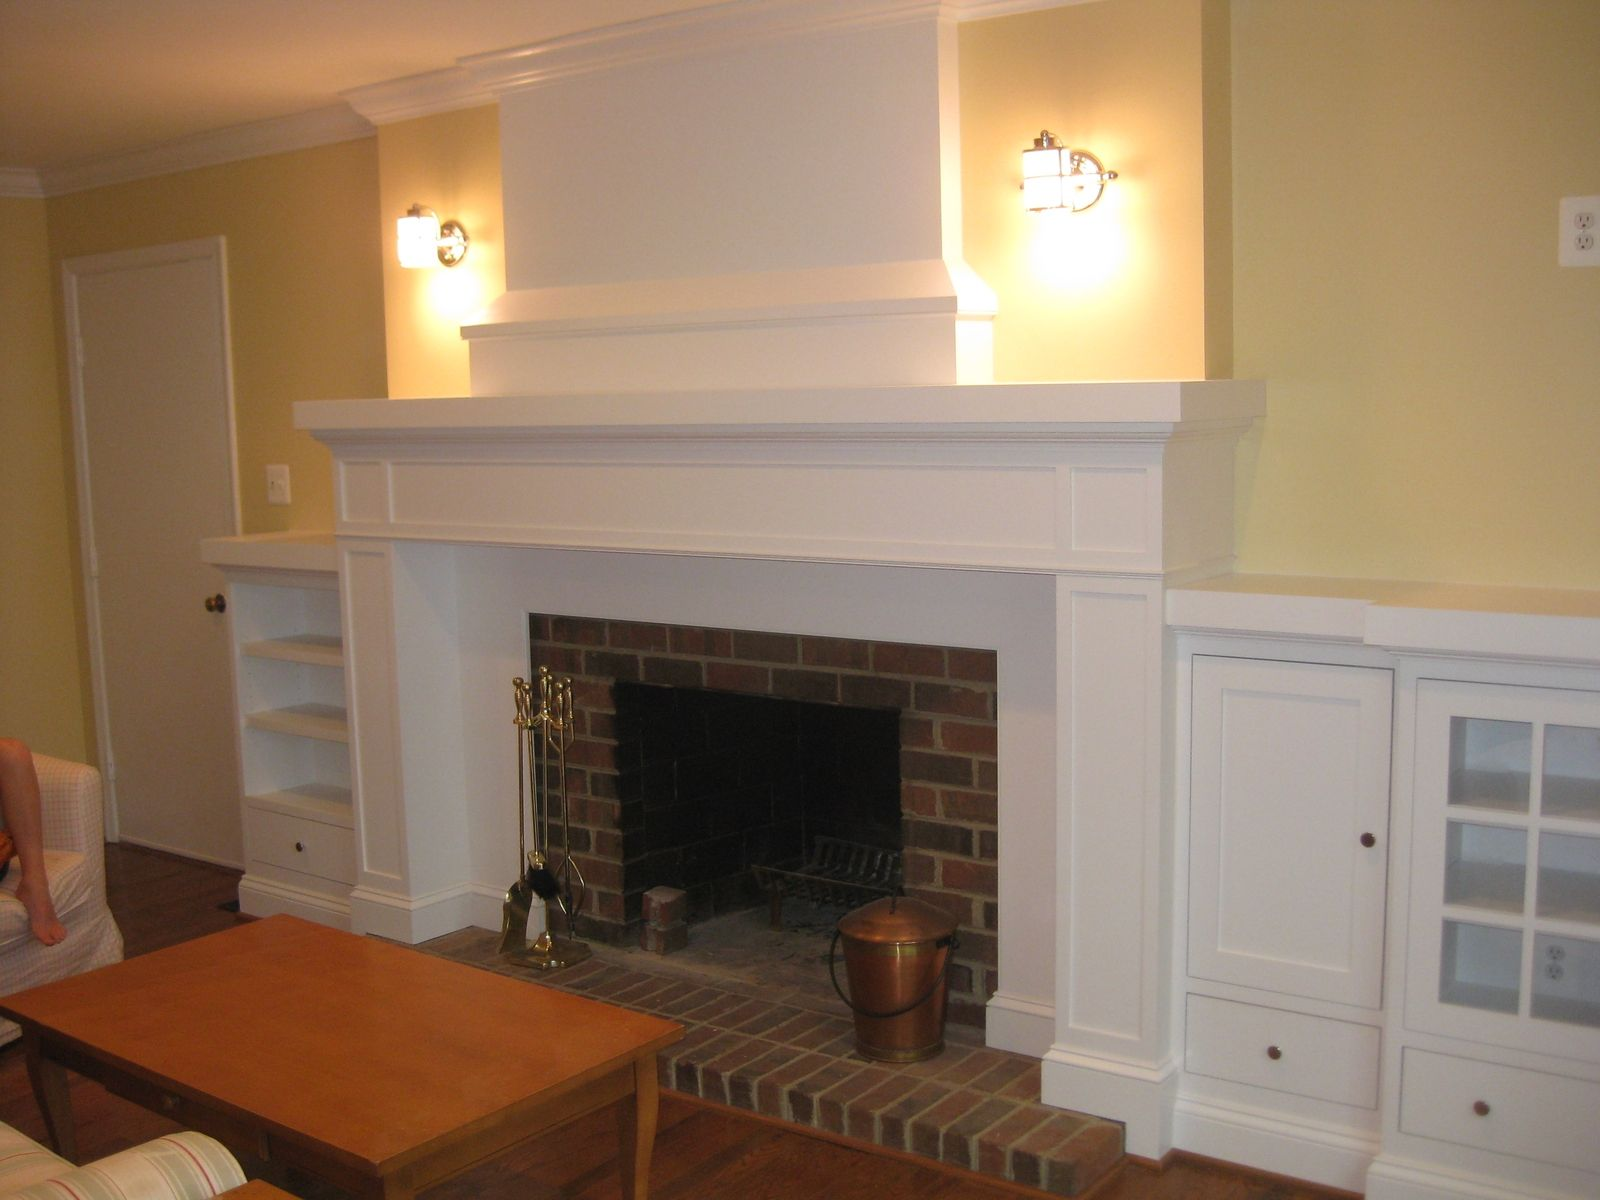 Custom Made Mantle With Media Storage by Base Home Services  CustomMadecom